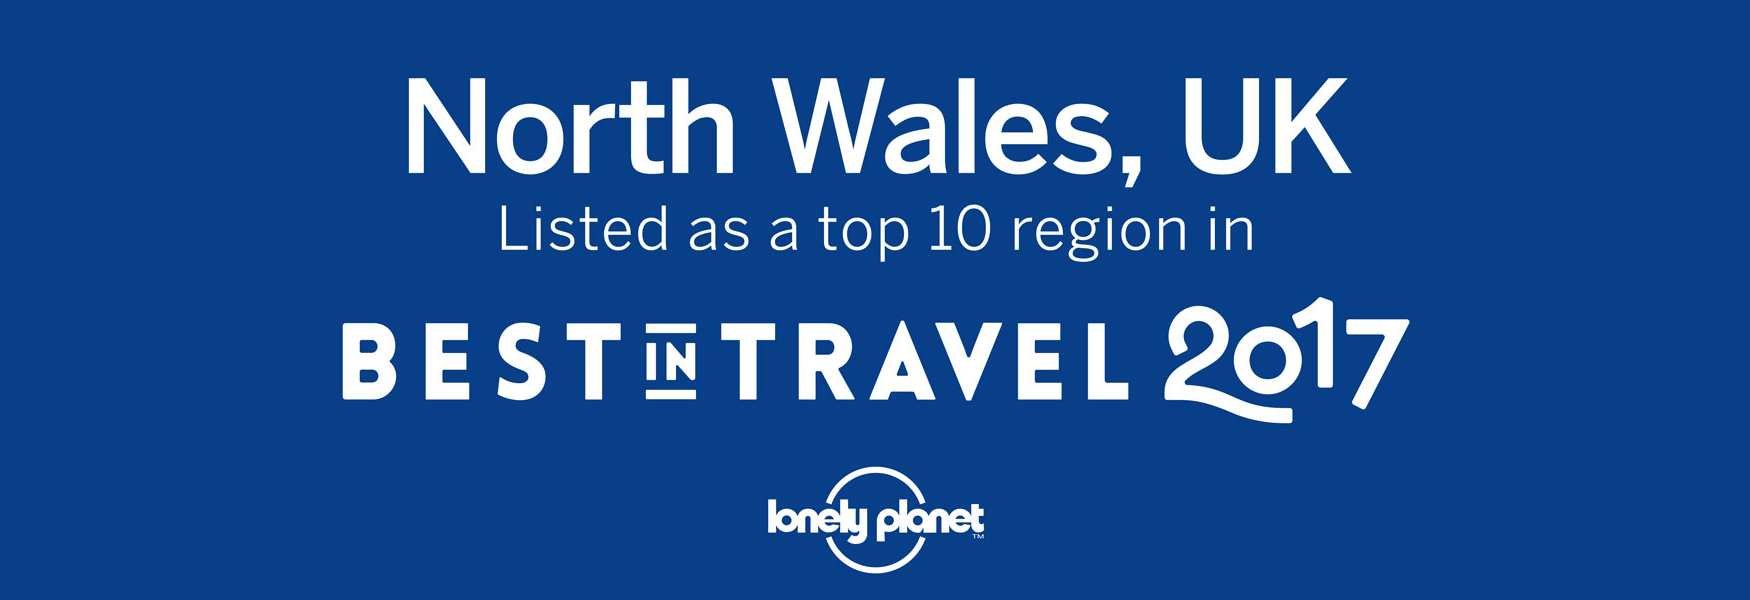 North Wales a Lonely planet top 10 destination